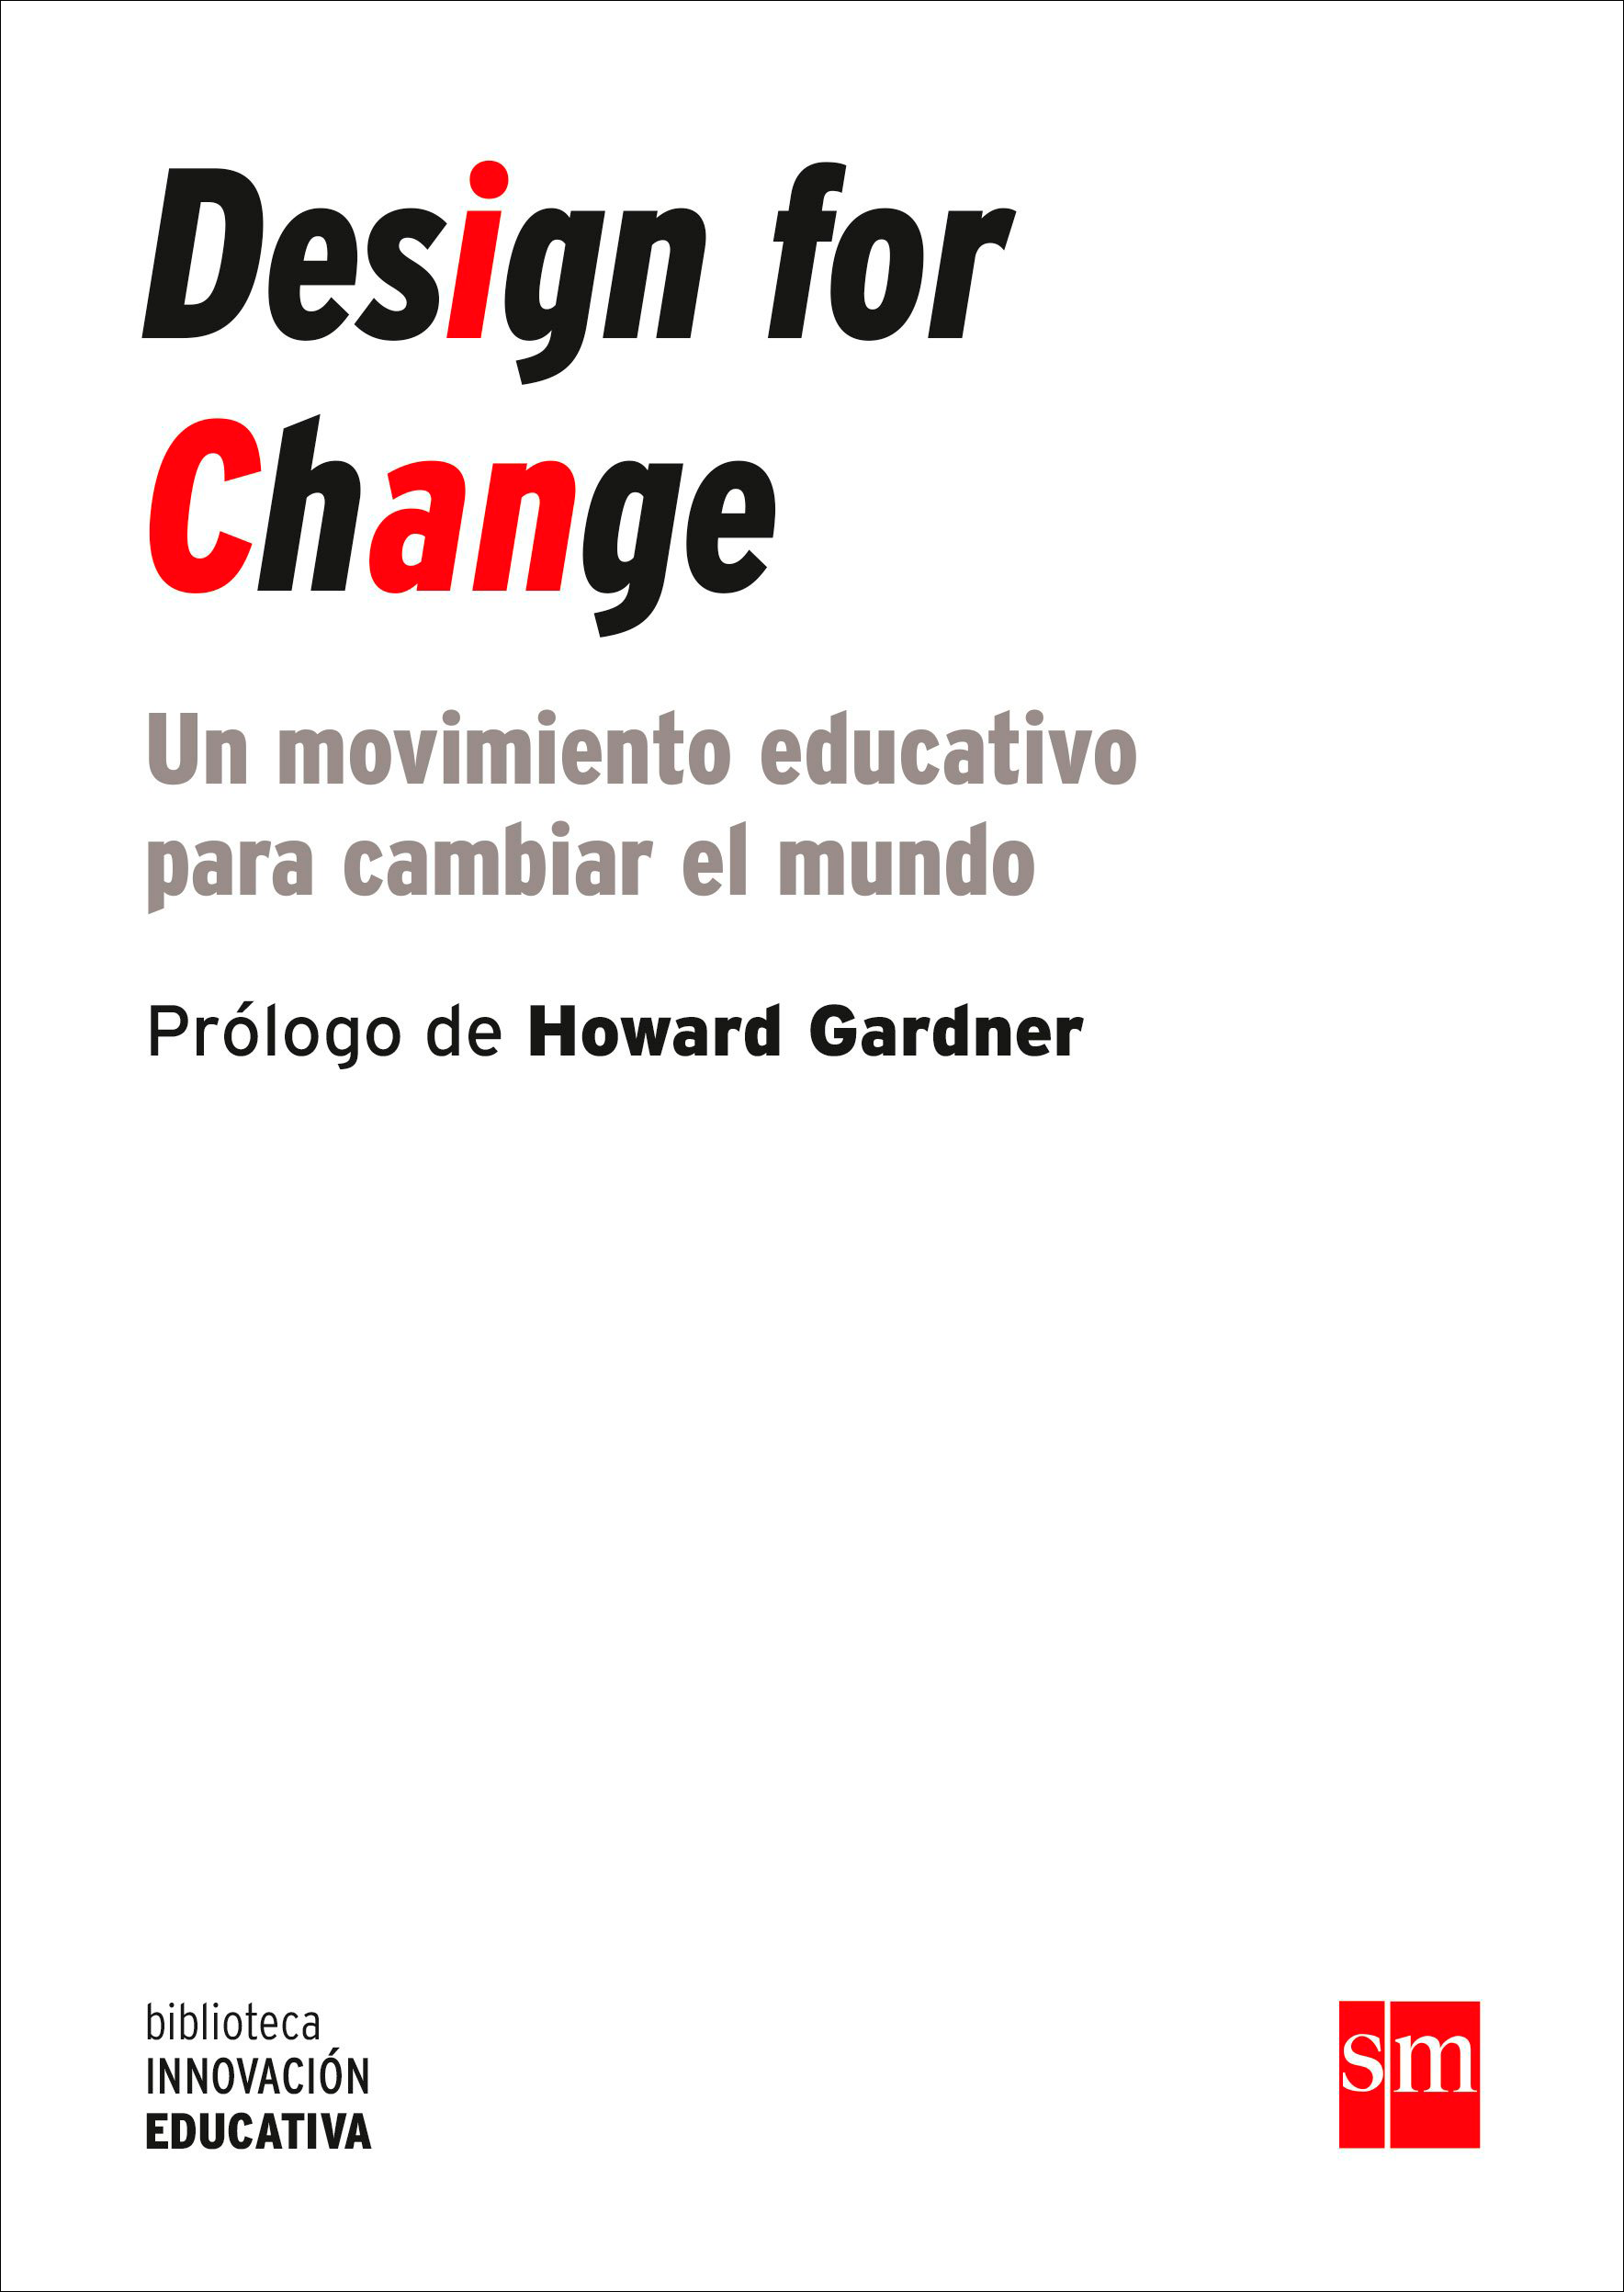 Design for Change. Un movimiento educativo para cambiar el mundo